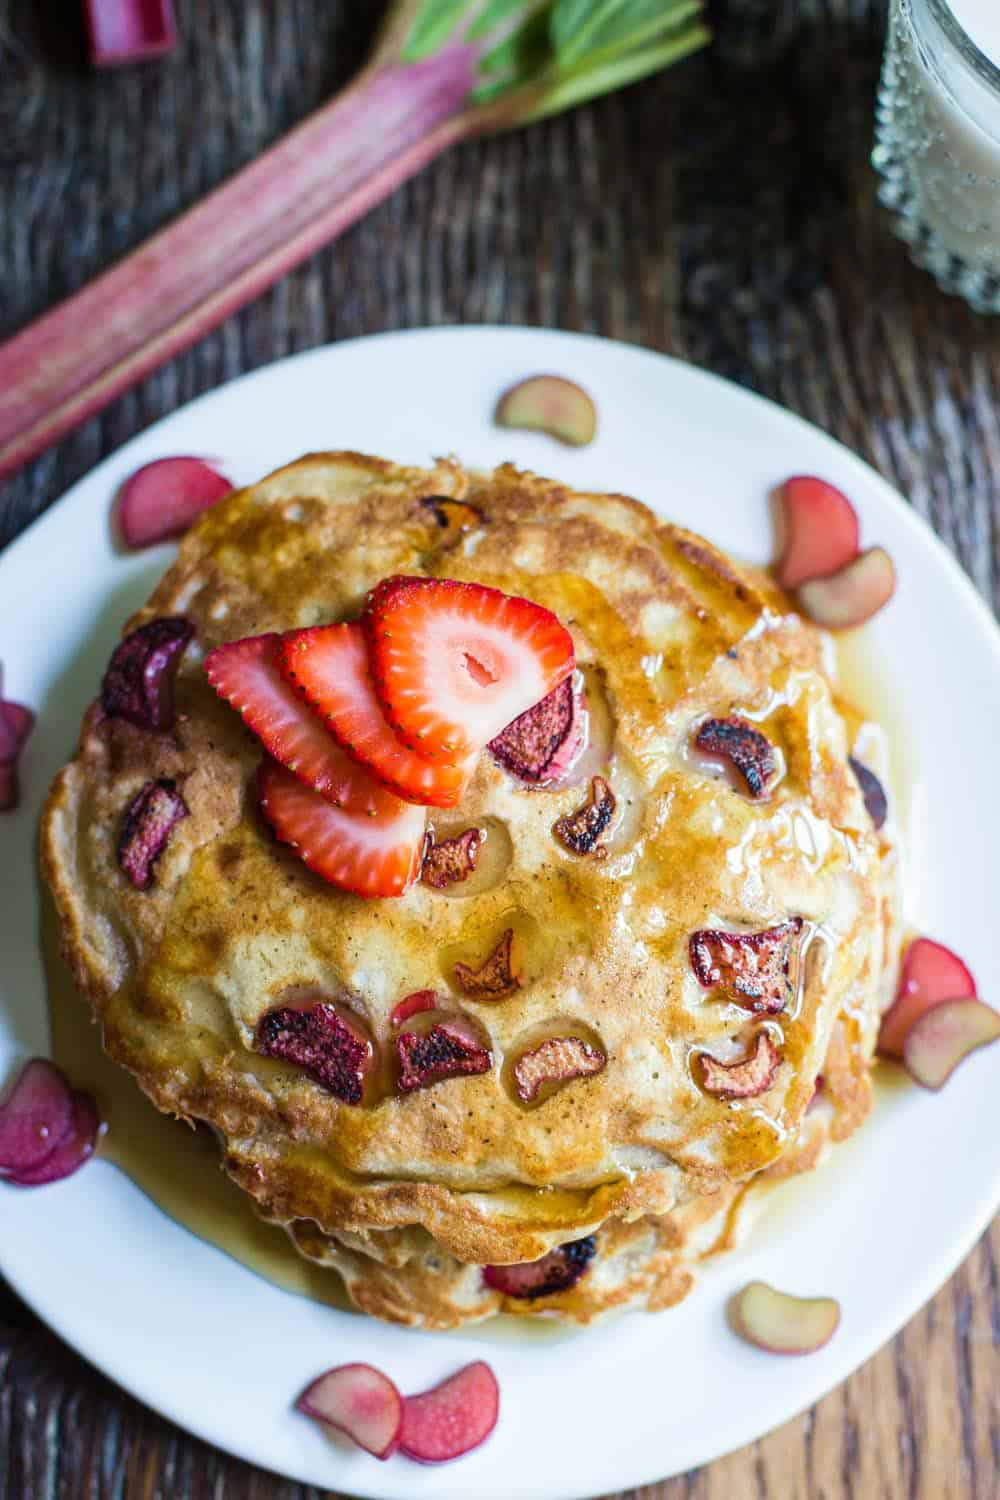 Awesome vegan rhubarb pancakes recipe! Brita Britnell's recipe for delicious, moist, pancakes with fresh rhubarb and banana. Vegan, vegetarian, dairy free. So good!